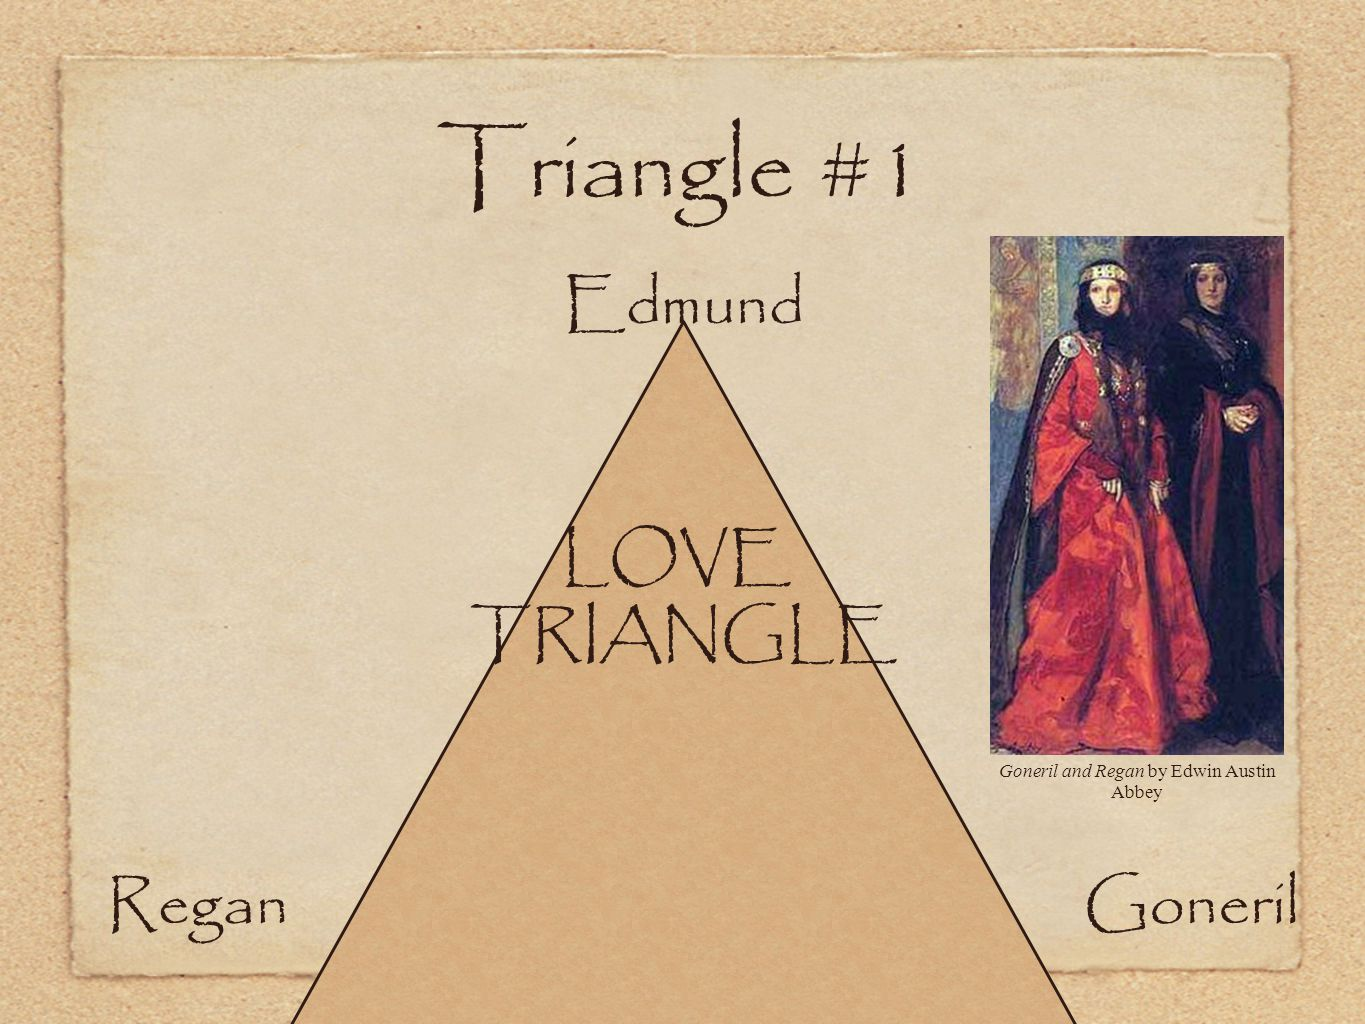 Triangle #1 Edmund ReganGoneril LOVE TRIANGLE Goneril and Regan by Edwin Austin Abbey